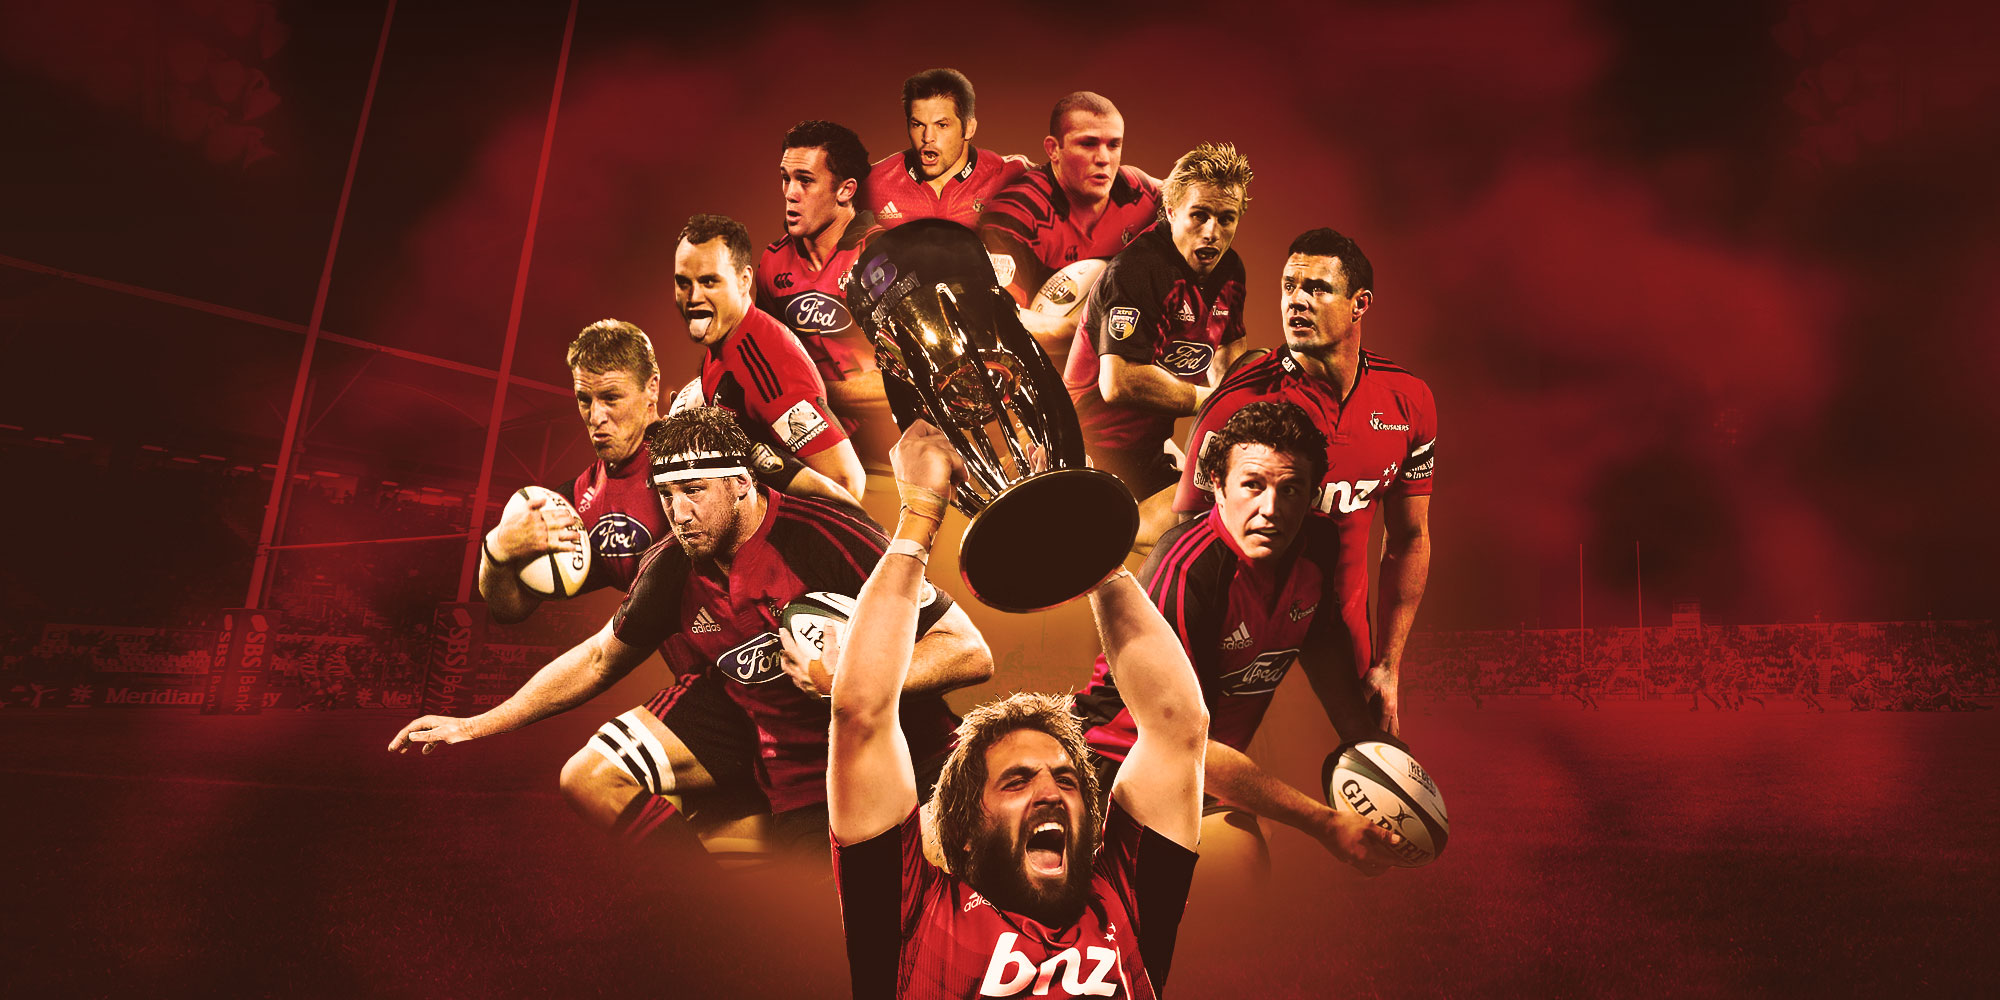 CRUSADERS PUT ON FINALS MASTERCLASS